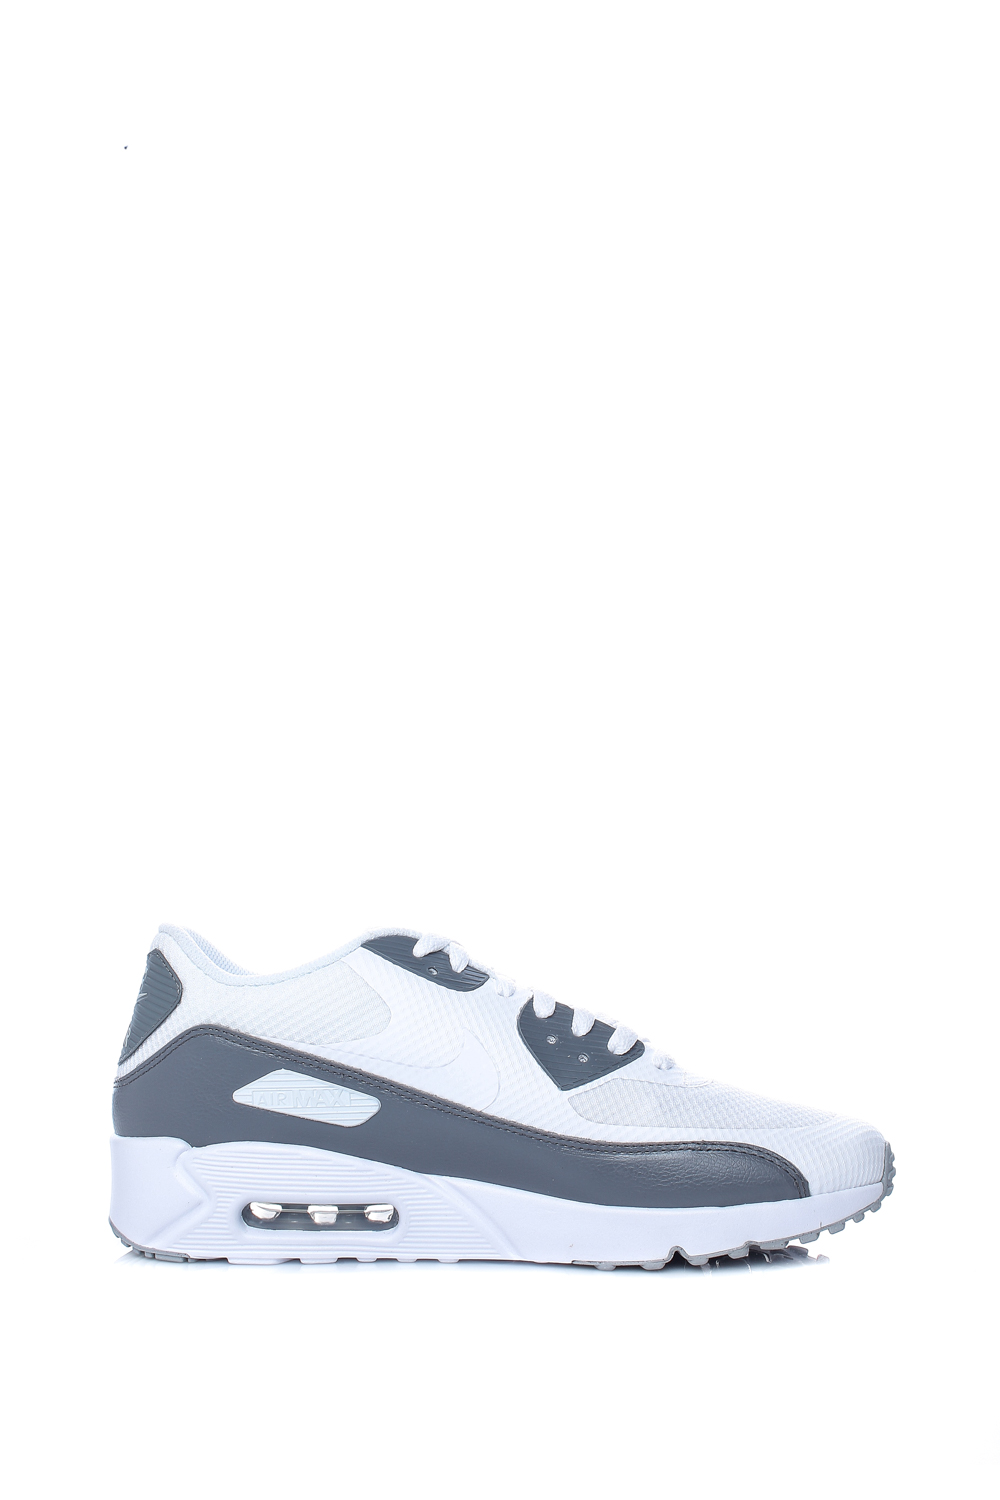 059c15bc02e NIKE – Ανδρικά αθλητικά παπούτσια Nike AIR MAX 90 ULTRA 2.0 ESSENTIAL λευκά  – μαύρα. Factoryoutlet